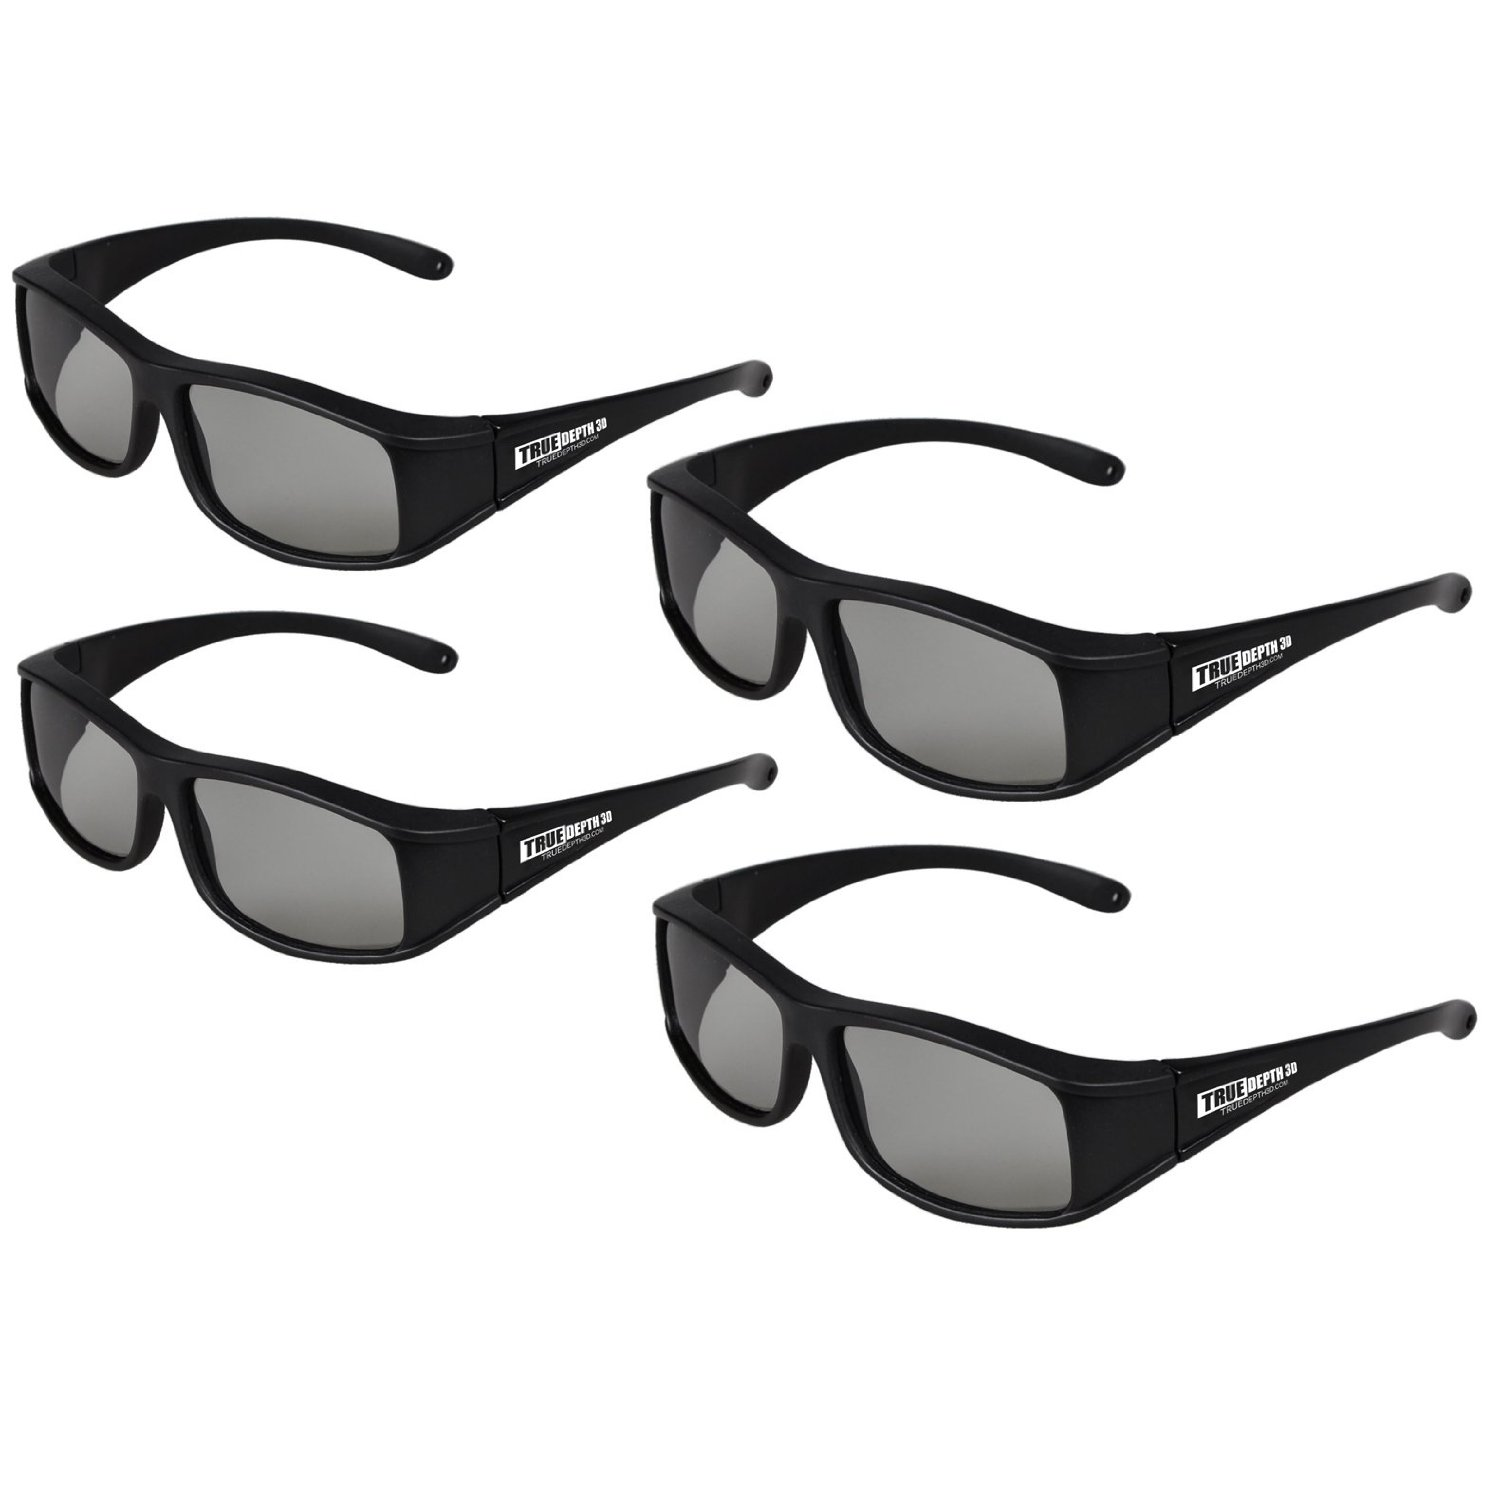 True Depth 3D® circular Polarized glasses for Passive LG 3D TVs (4 pairs!)